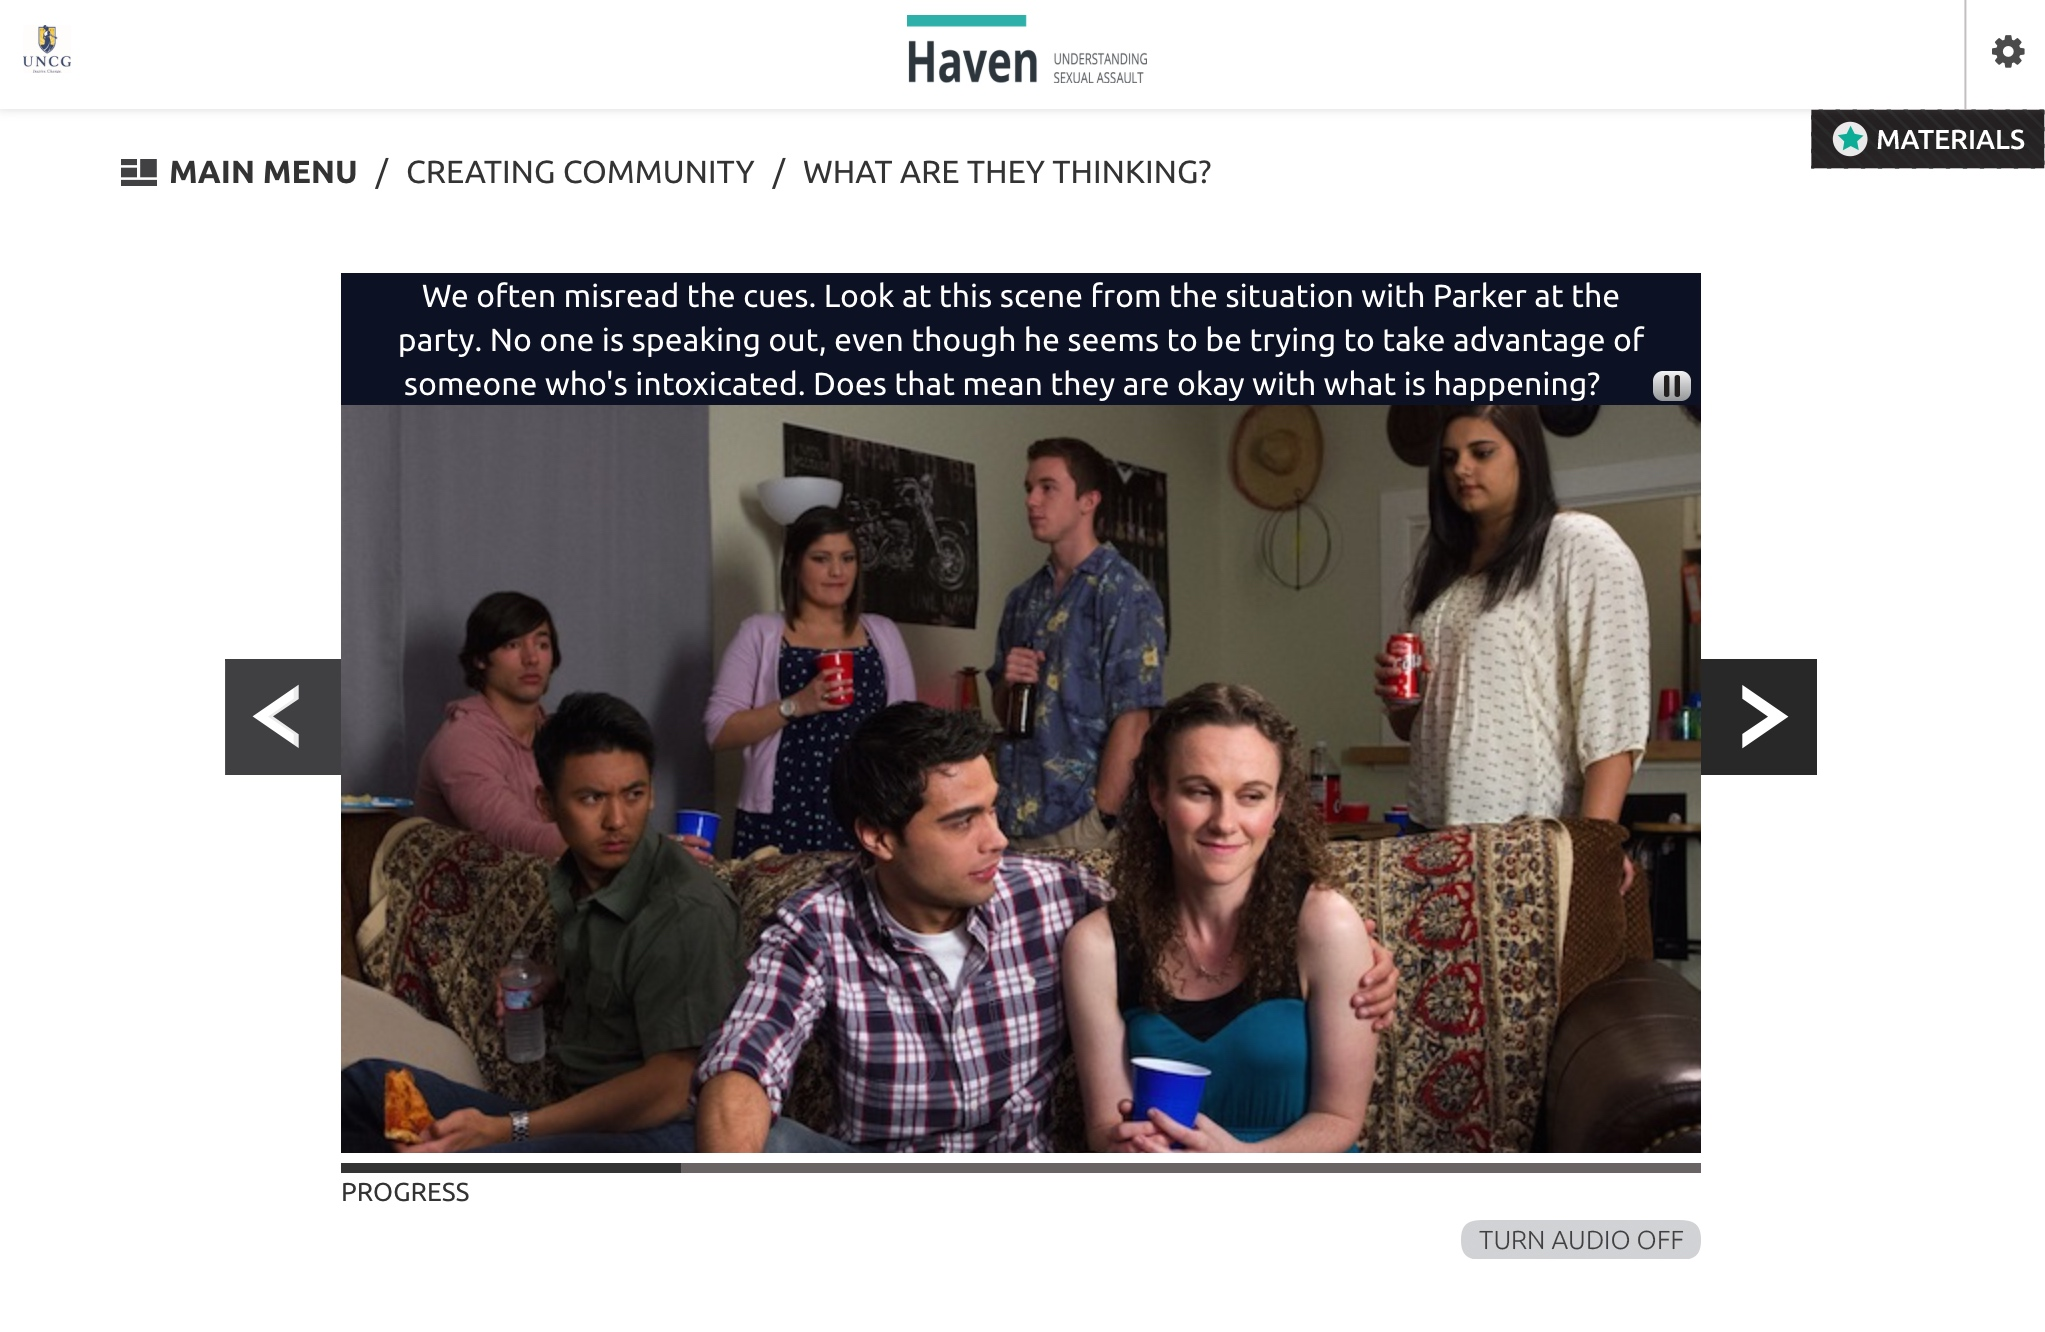 A screenshot of the online course taught by UNCG